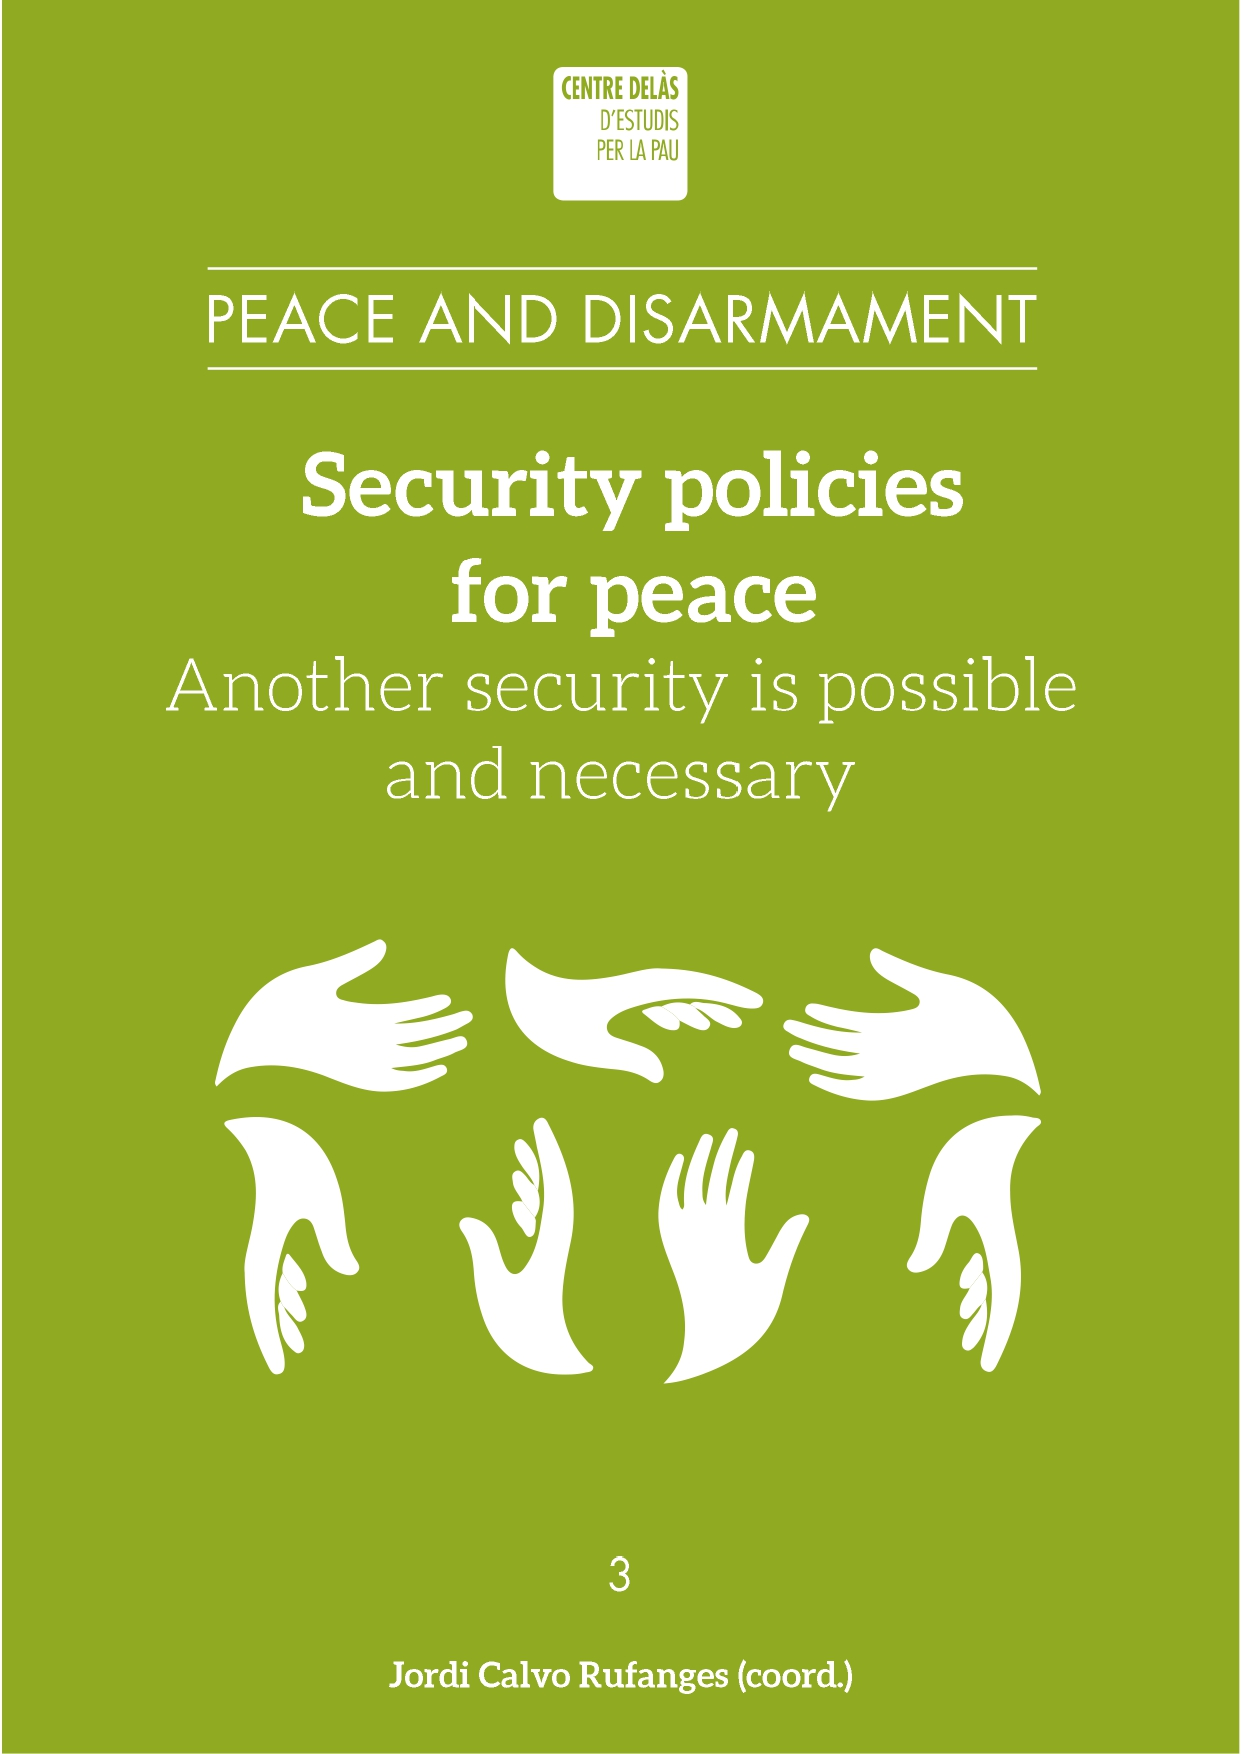 Security policies for peace. Another security is possible and necessary